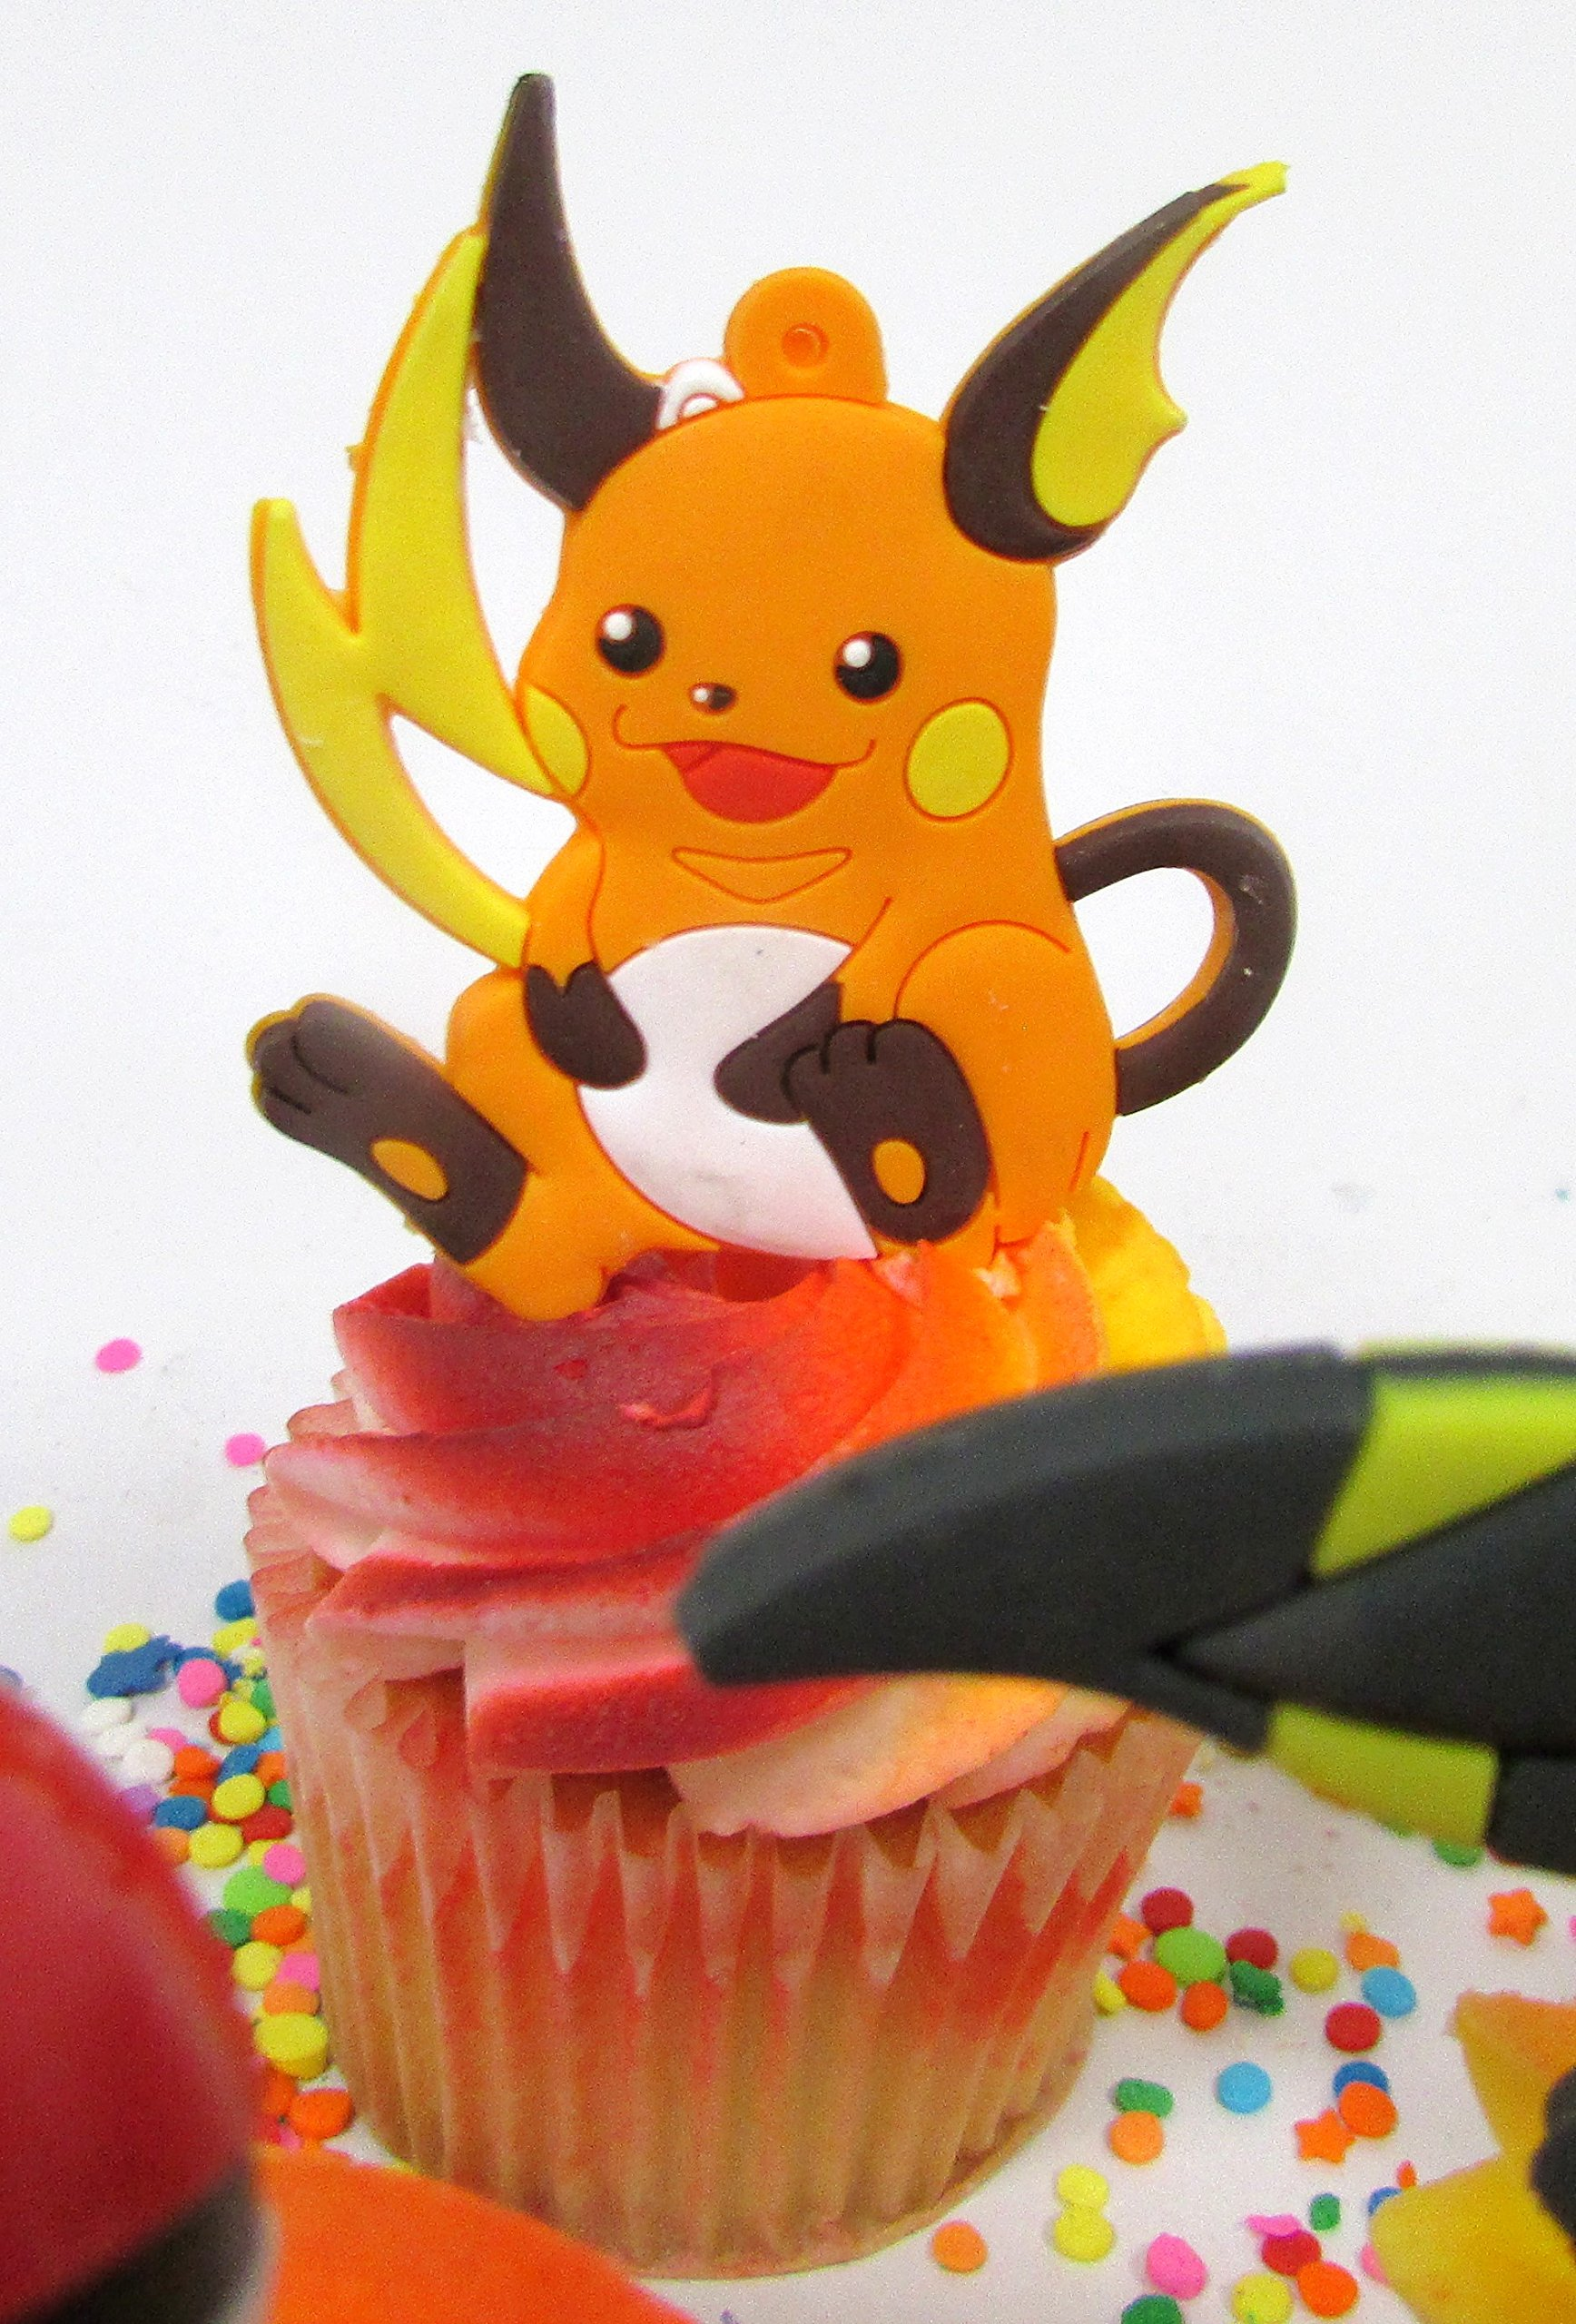 Pikachu and Friends Cupcake Topper Set with 6 Random Pocketmonster Characters and 6 Poke Balls by Cupcake Topper (Image #2)